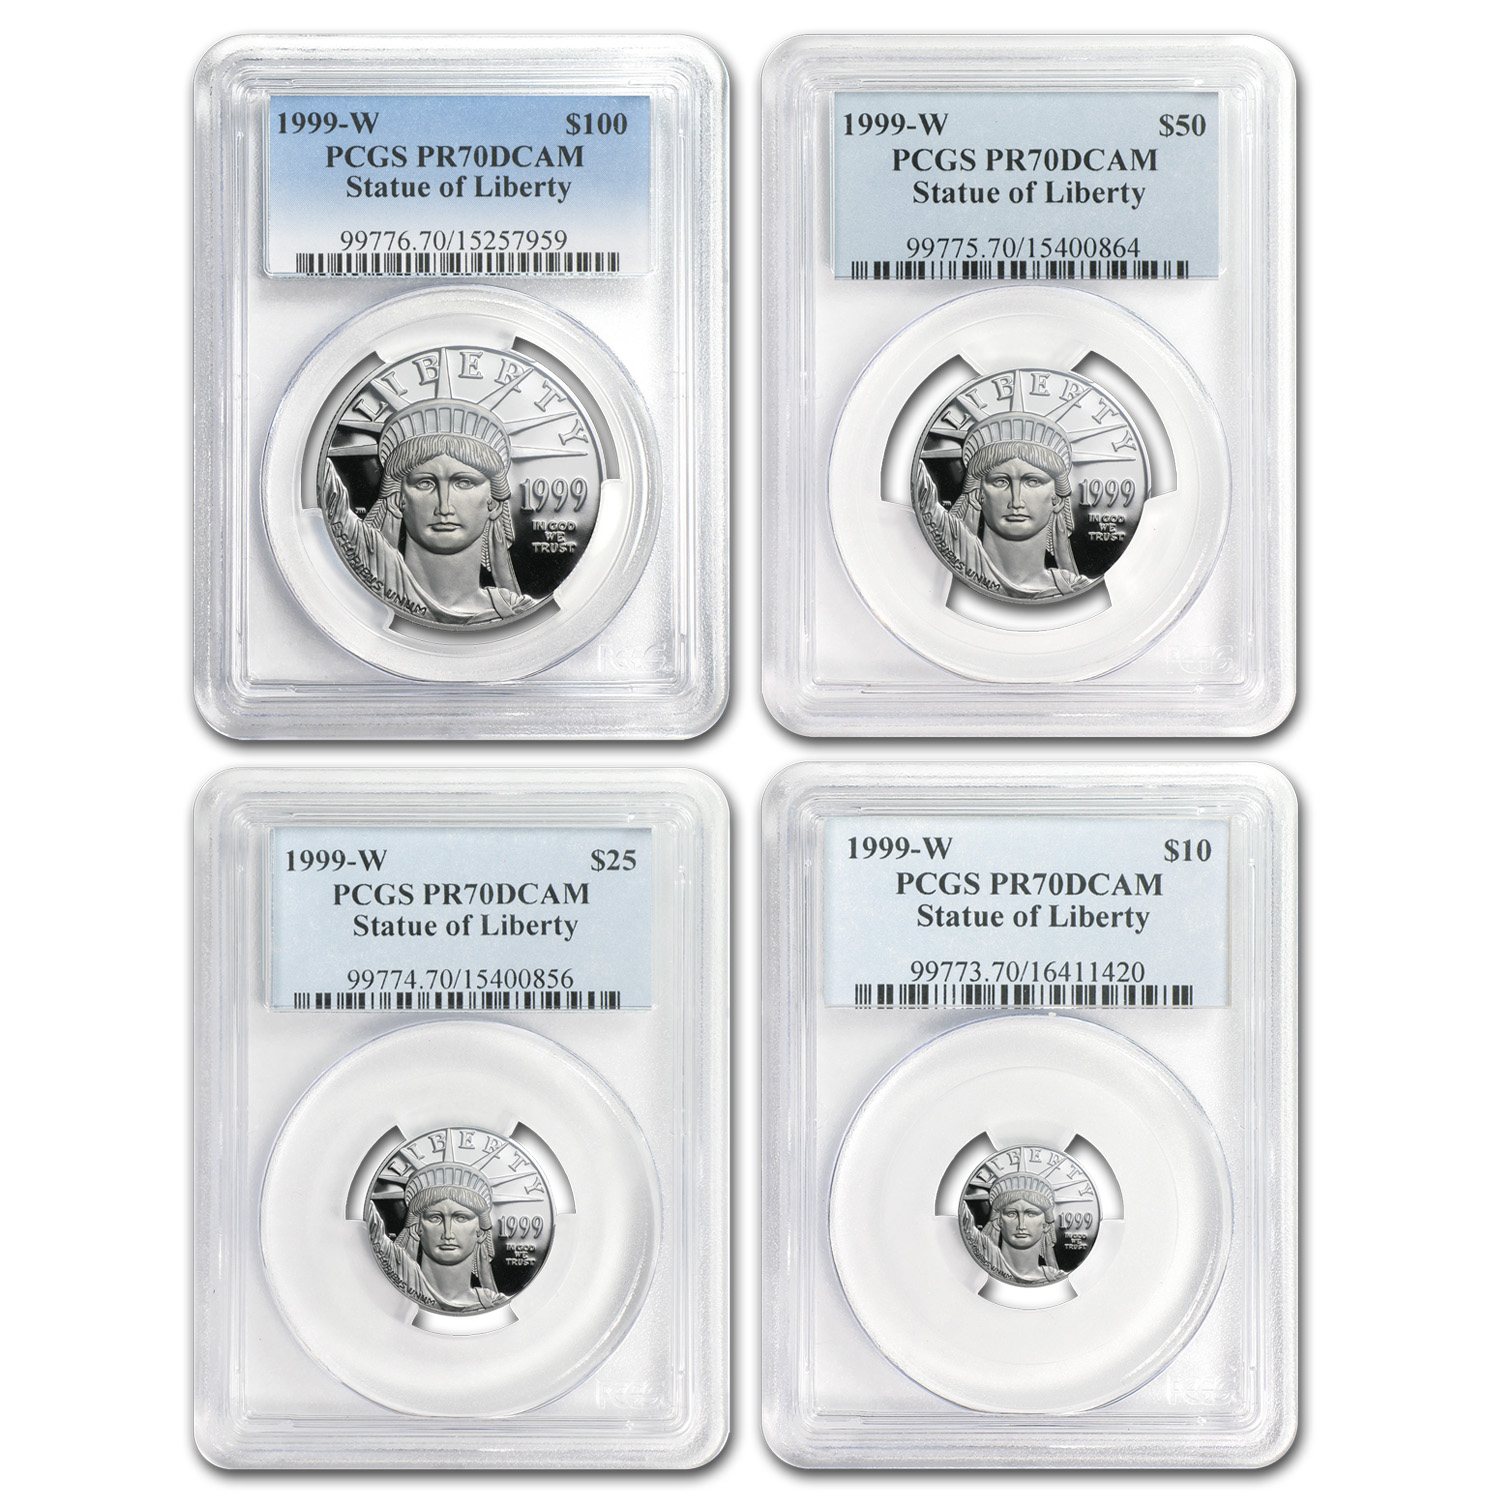 1999-W 4-Coin Proof Platinum American Eagle Set PR-70 PCGS